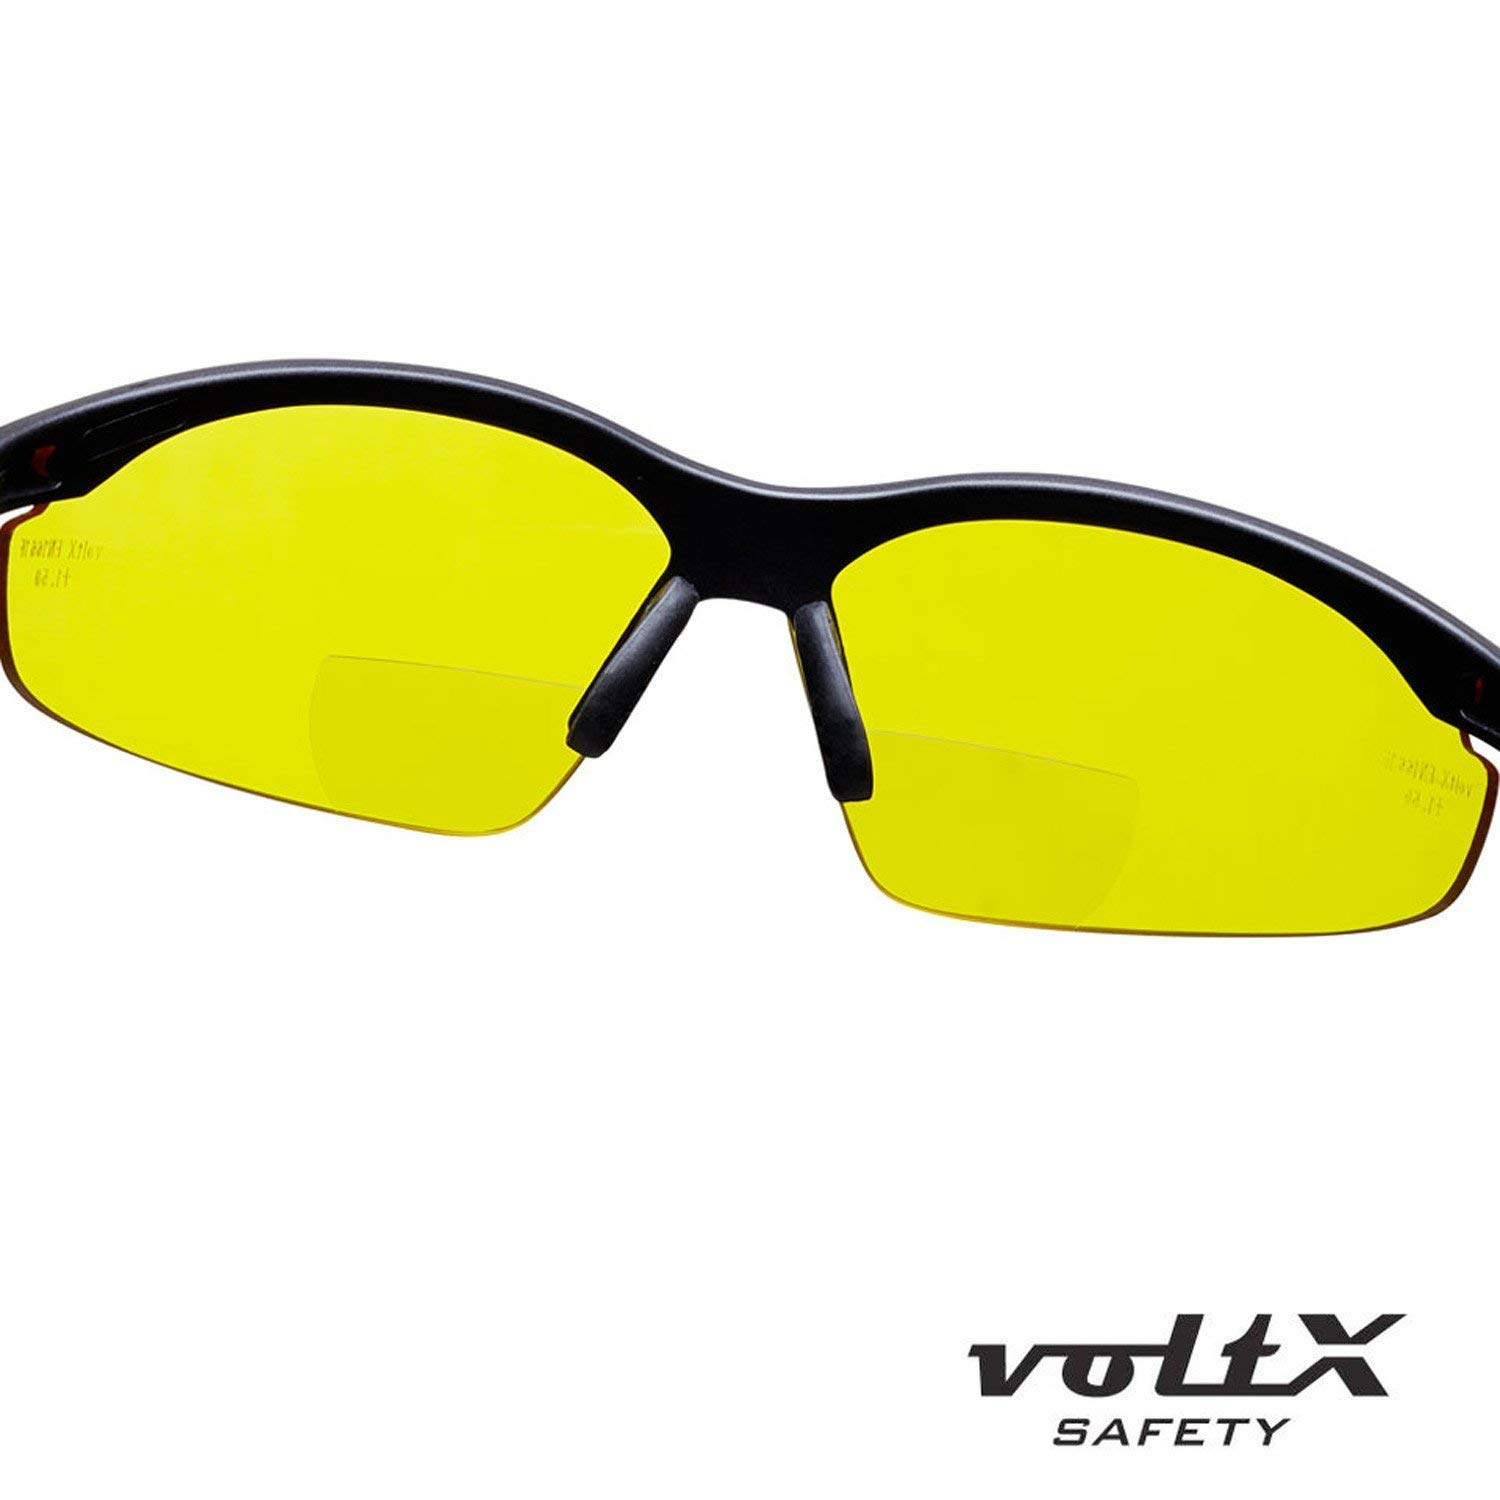 Includes Safety Cord with headstop +3.0 Dioptre Clear, Polarized /& Yellow Lens CE EN166f certified//Cycling Sports Glasses Wraparound Style 3 x voltX CONSTRUCTOR BIFOCAL Reading Safety Glasses